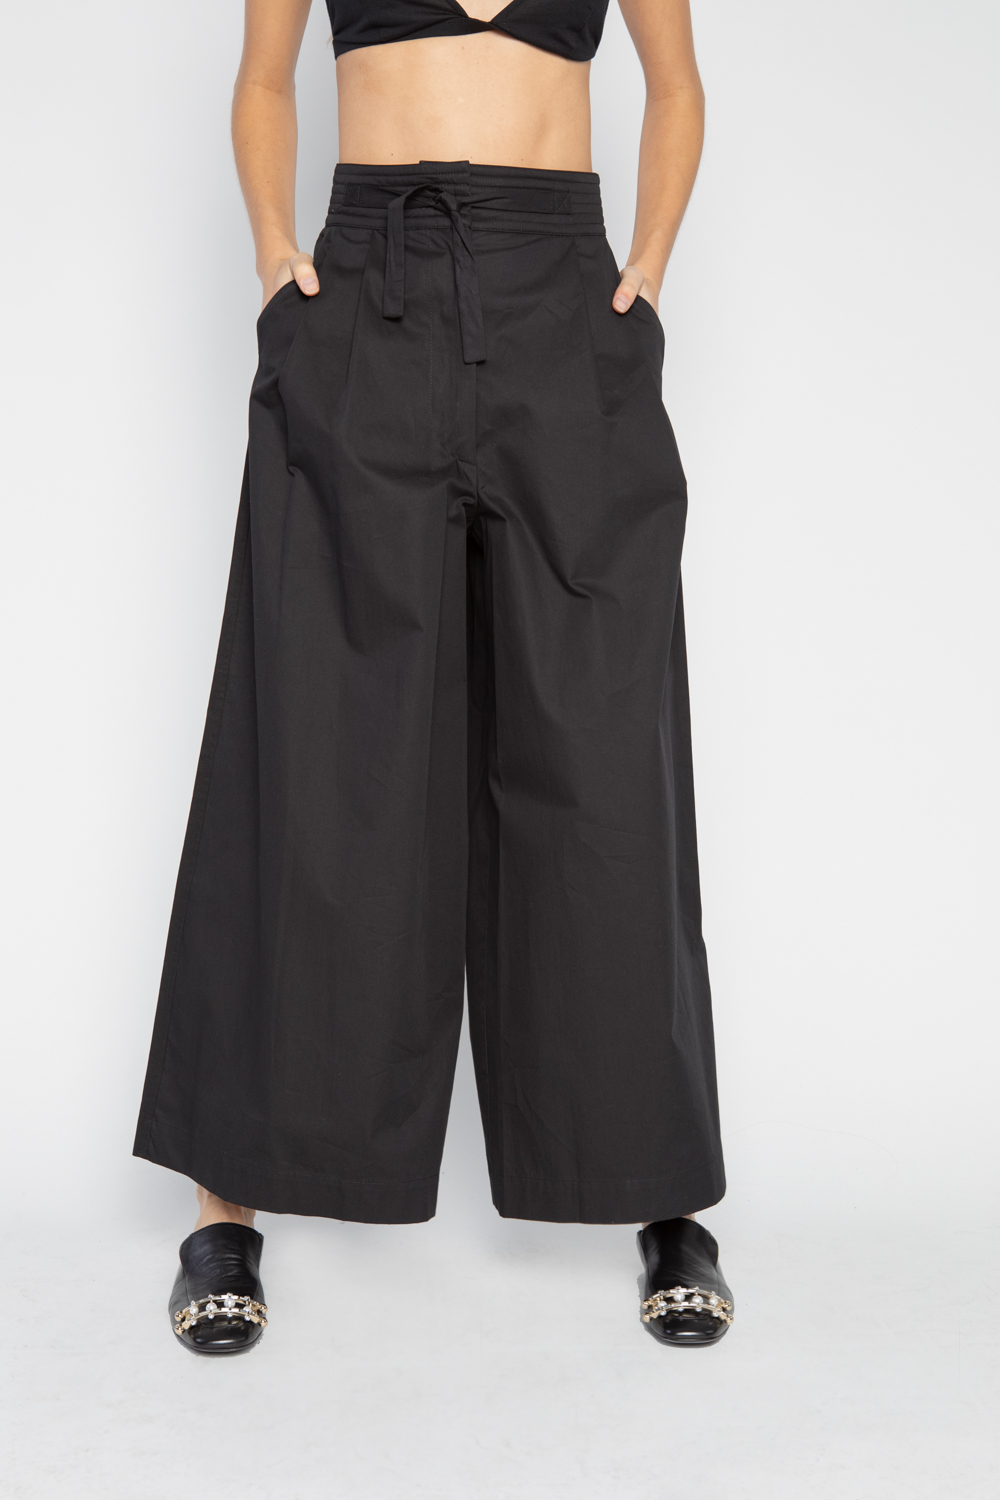 Wide Leg Judo Trouser in black by Isa Arfen  High-waisted pant with